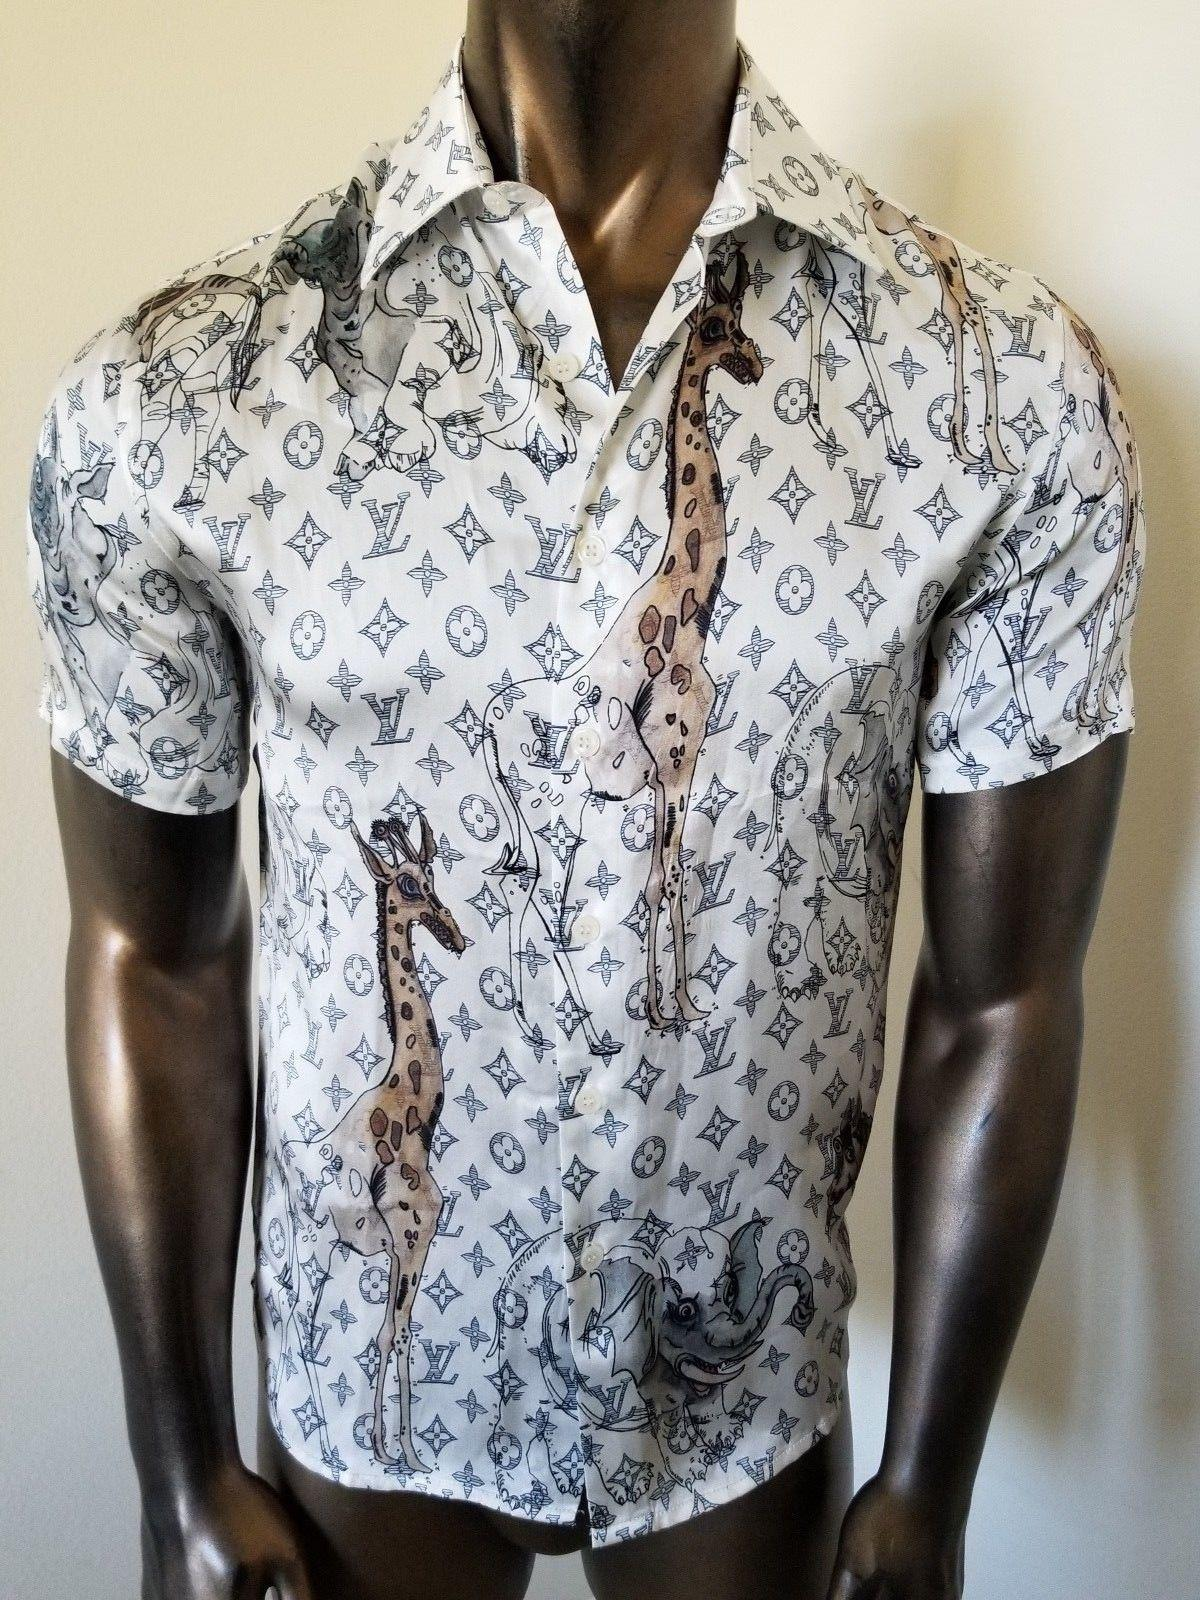 93fdc81ae188 LOUIS VUITTON Monogramm Giraffe Chapman Brothers SILK SHIRT LV cheap luxury  sale 1 ...